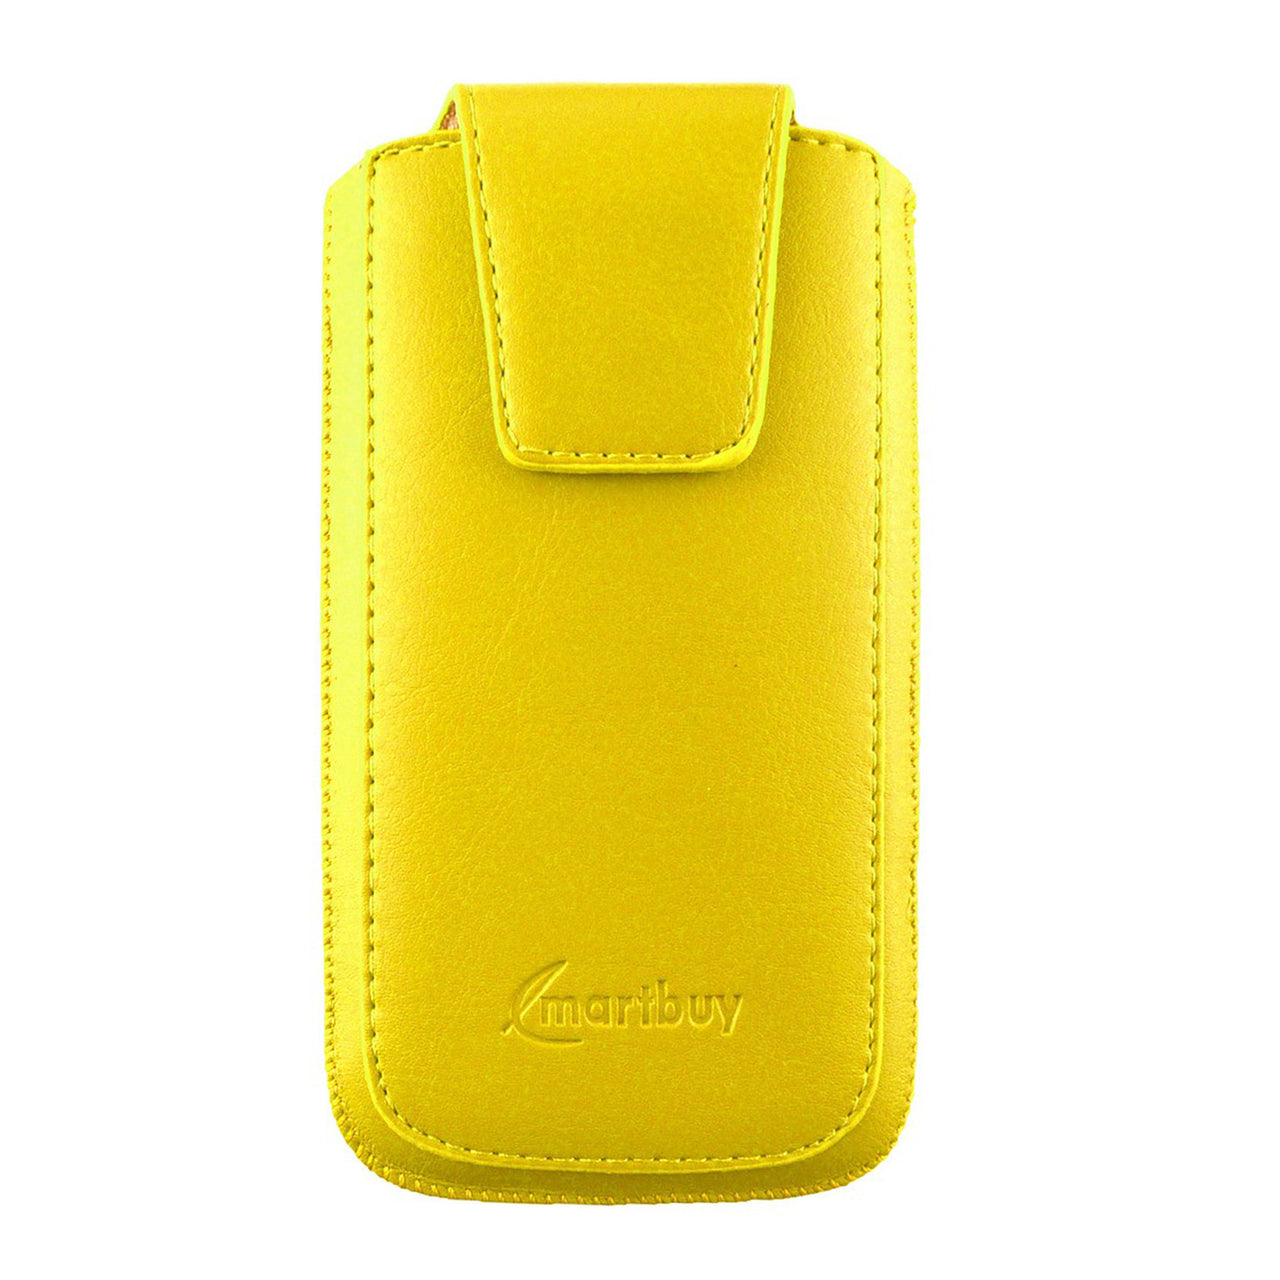 Universal Phone Pouch - Yellow Sleek